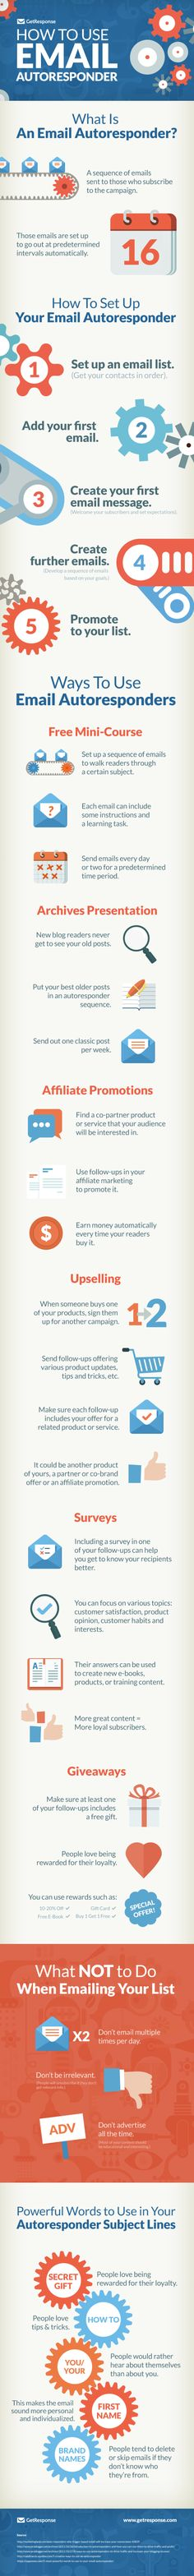 How to Use an Email Autoresponder #Infographic - GetResponse Blog - Email Marketing Tips